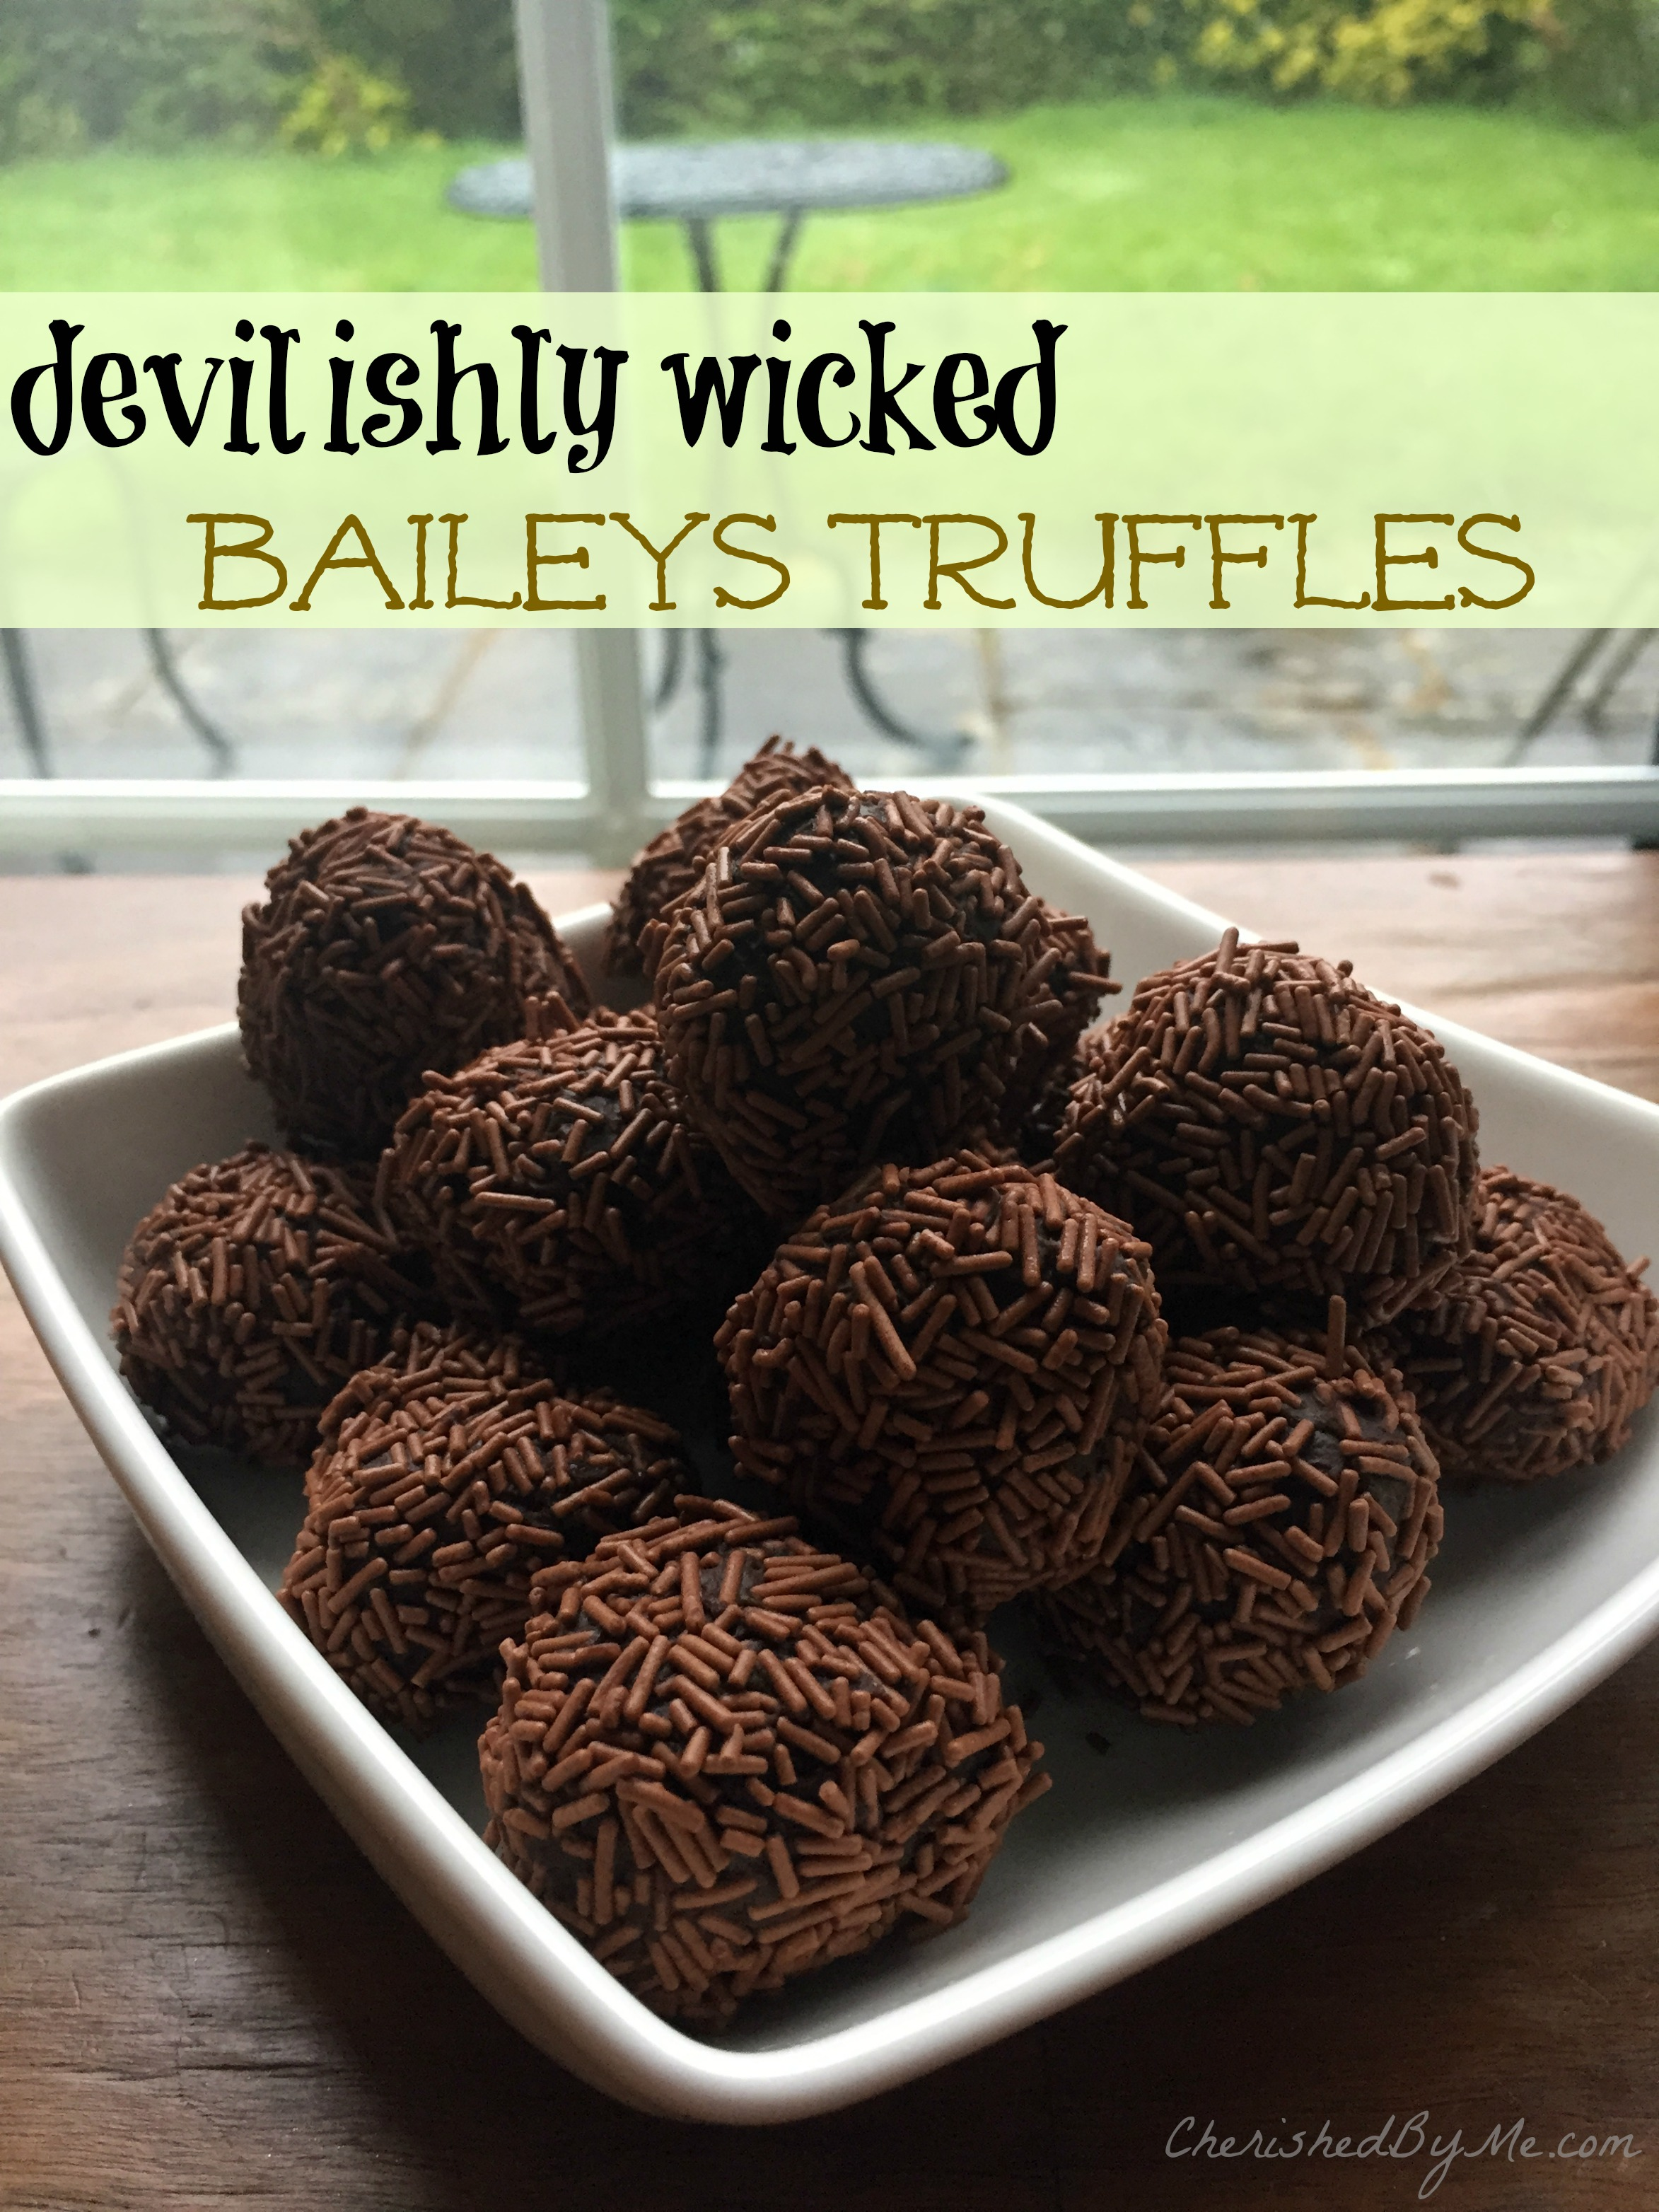 Devilishy wicked Baileys Truffles